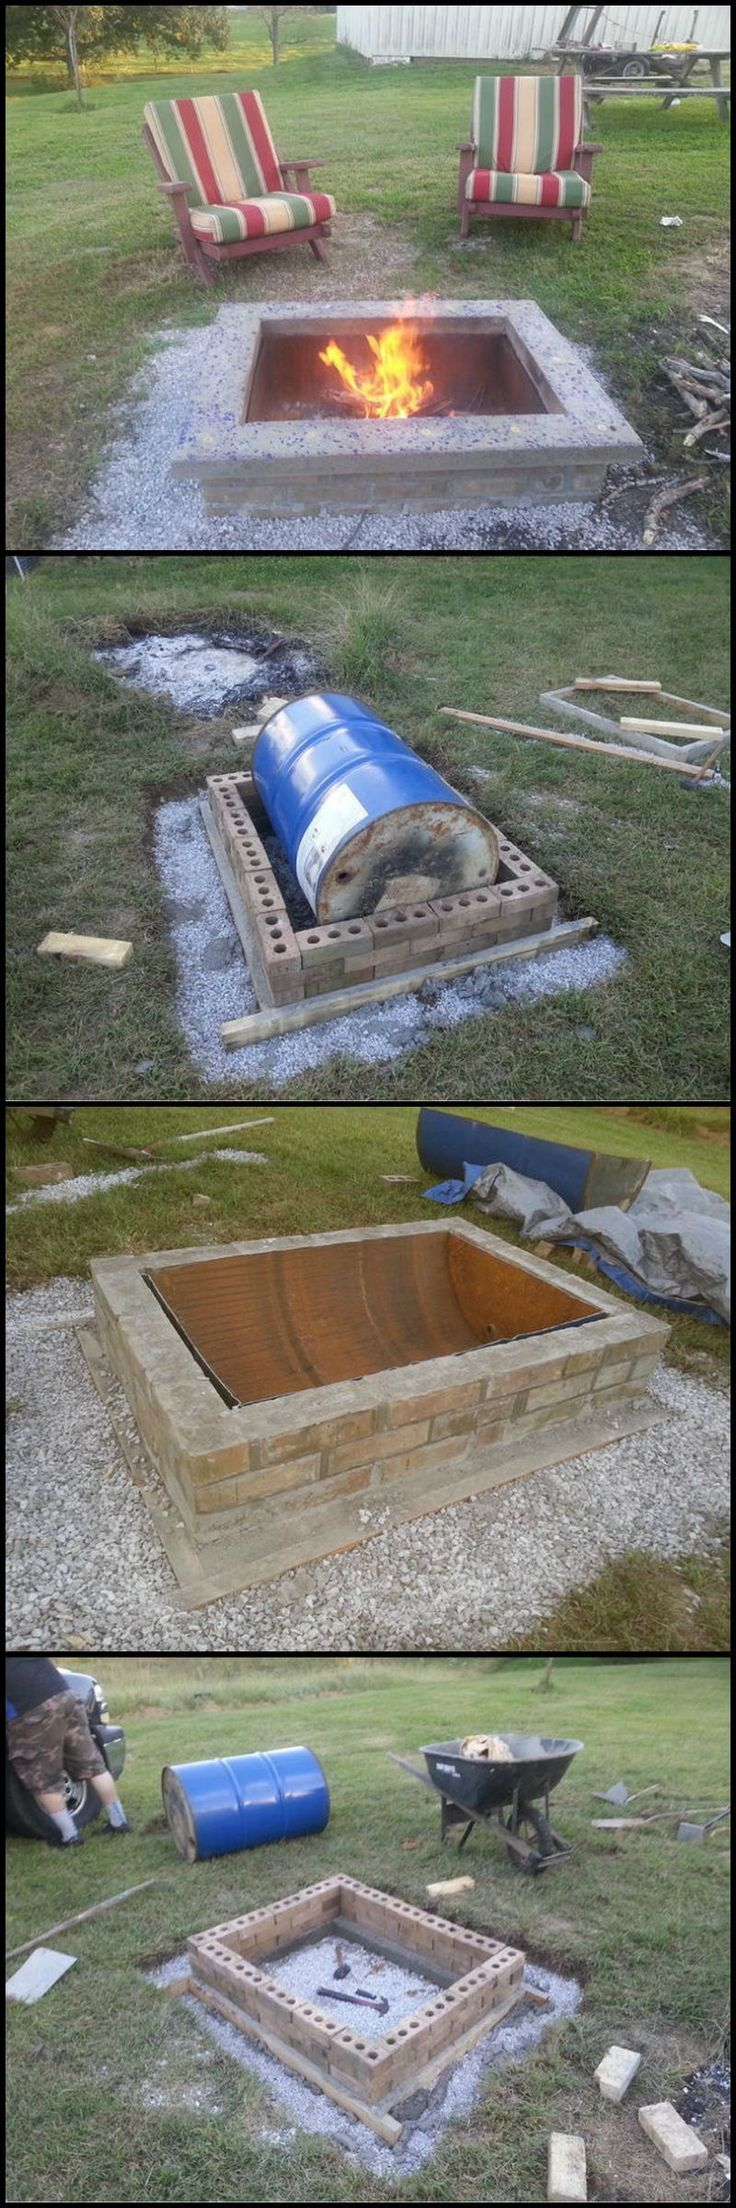 How To Build A Fire Pit With Custom Cap Stone http://theownerbuildernetwork.co/9djg Does your outdoor space need a fire pit? Keep your outdoor space cozy and warm with this DIY fire pit project!